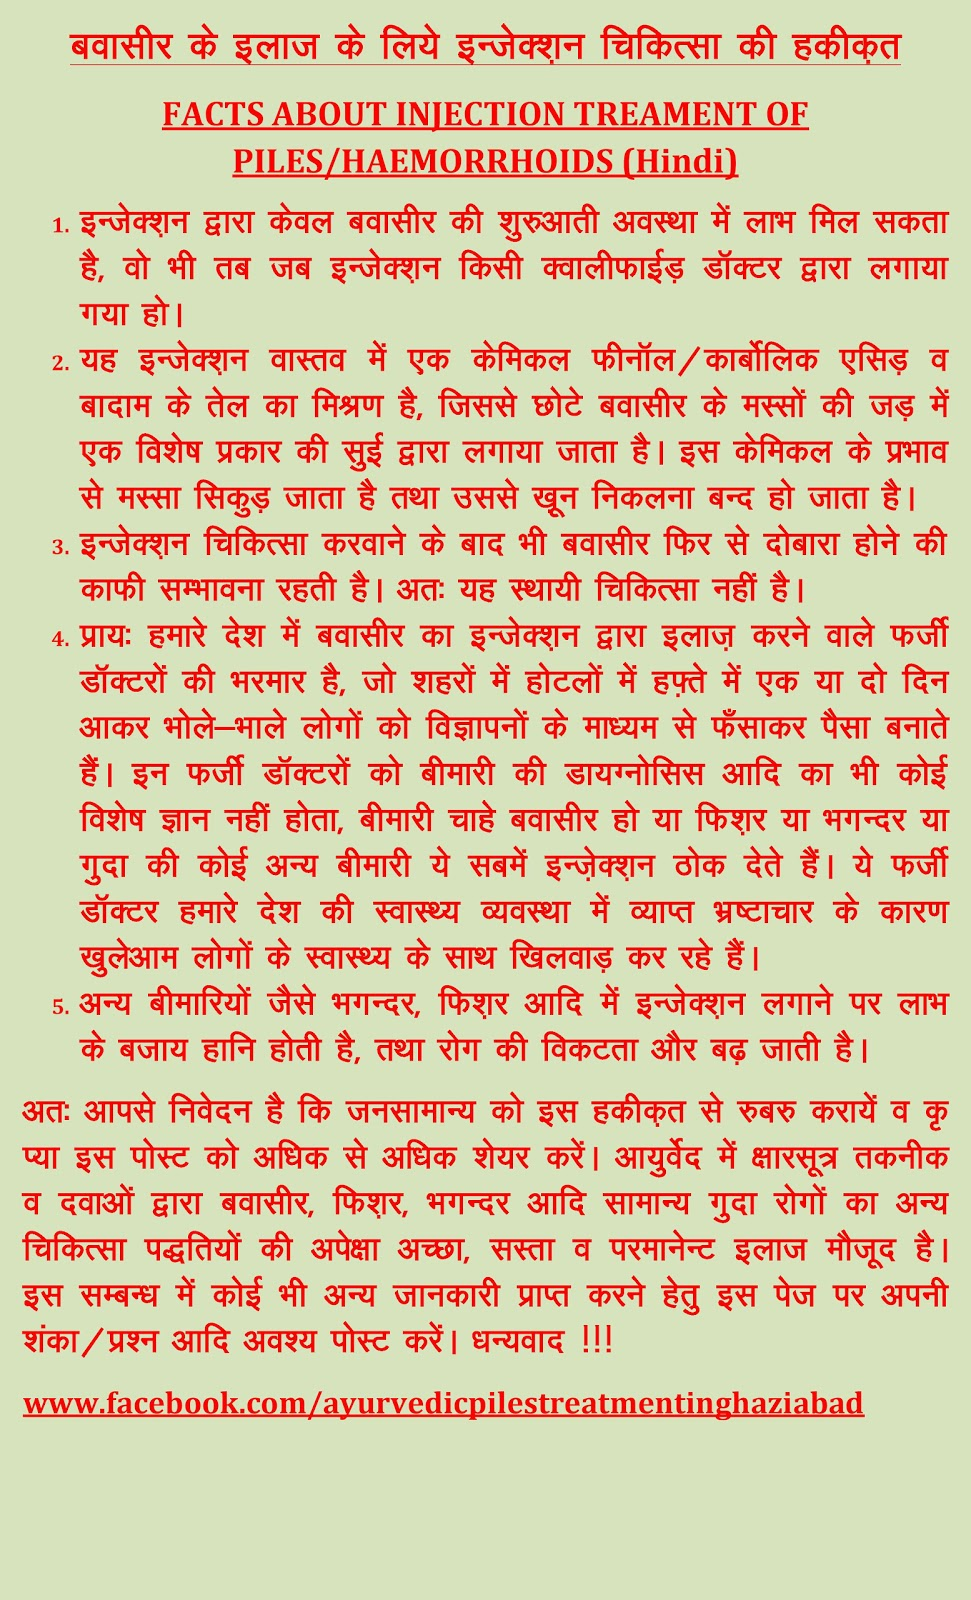 Weight Loss Diet Chart In Hindi Gallery - Chart Example Ideas